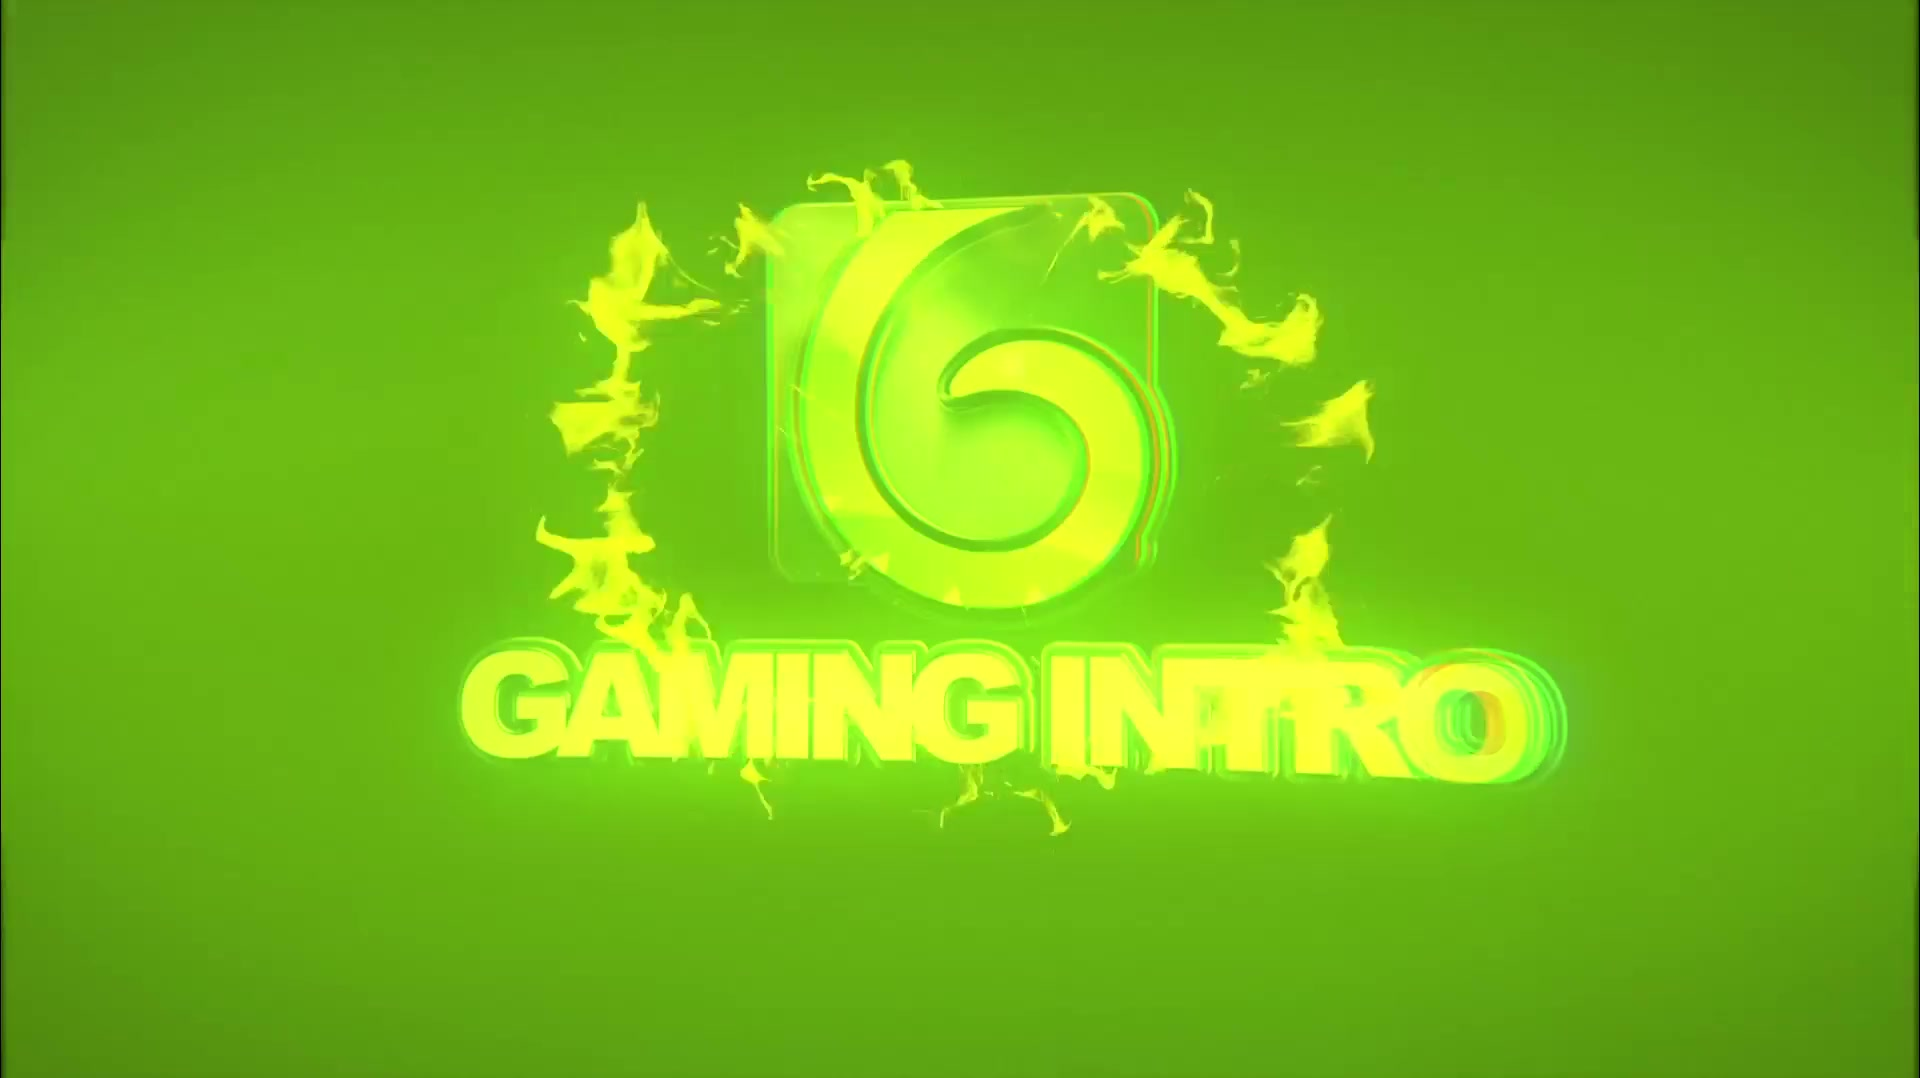 Gaming Intro Gamer channel opener Videohive 25628048 After Effects Image 6